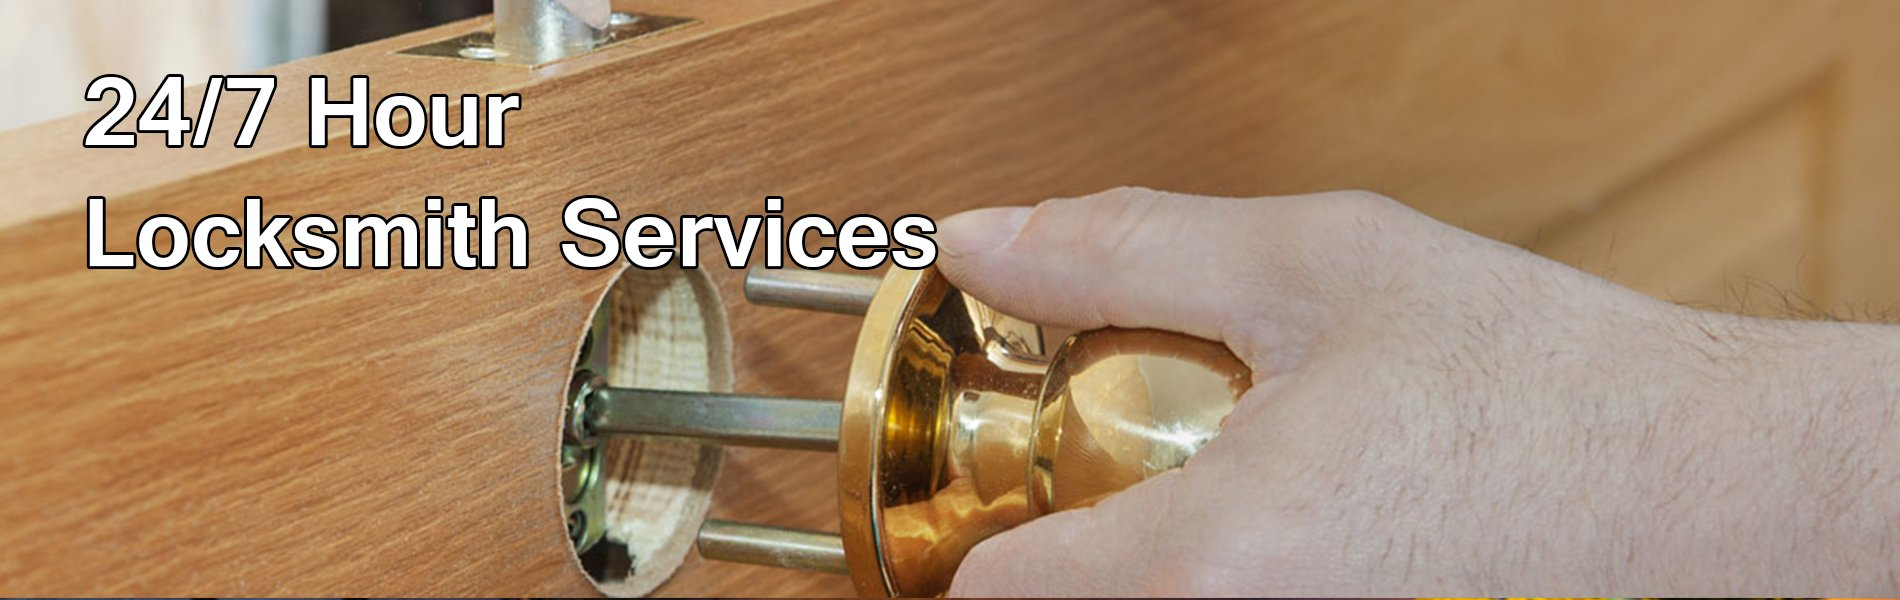 Elite Locksmith, Mountlake Ter, WA 425-201-4133